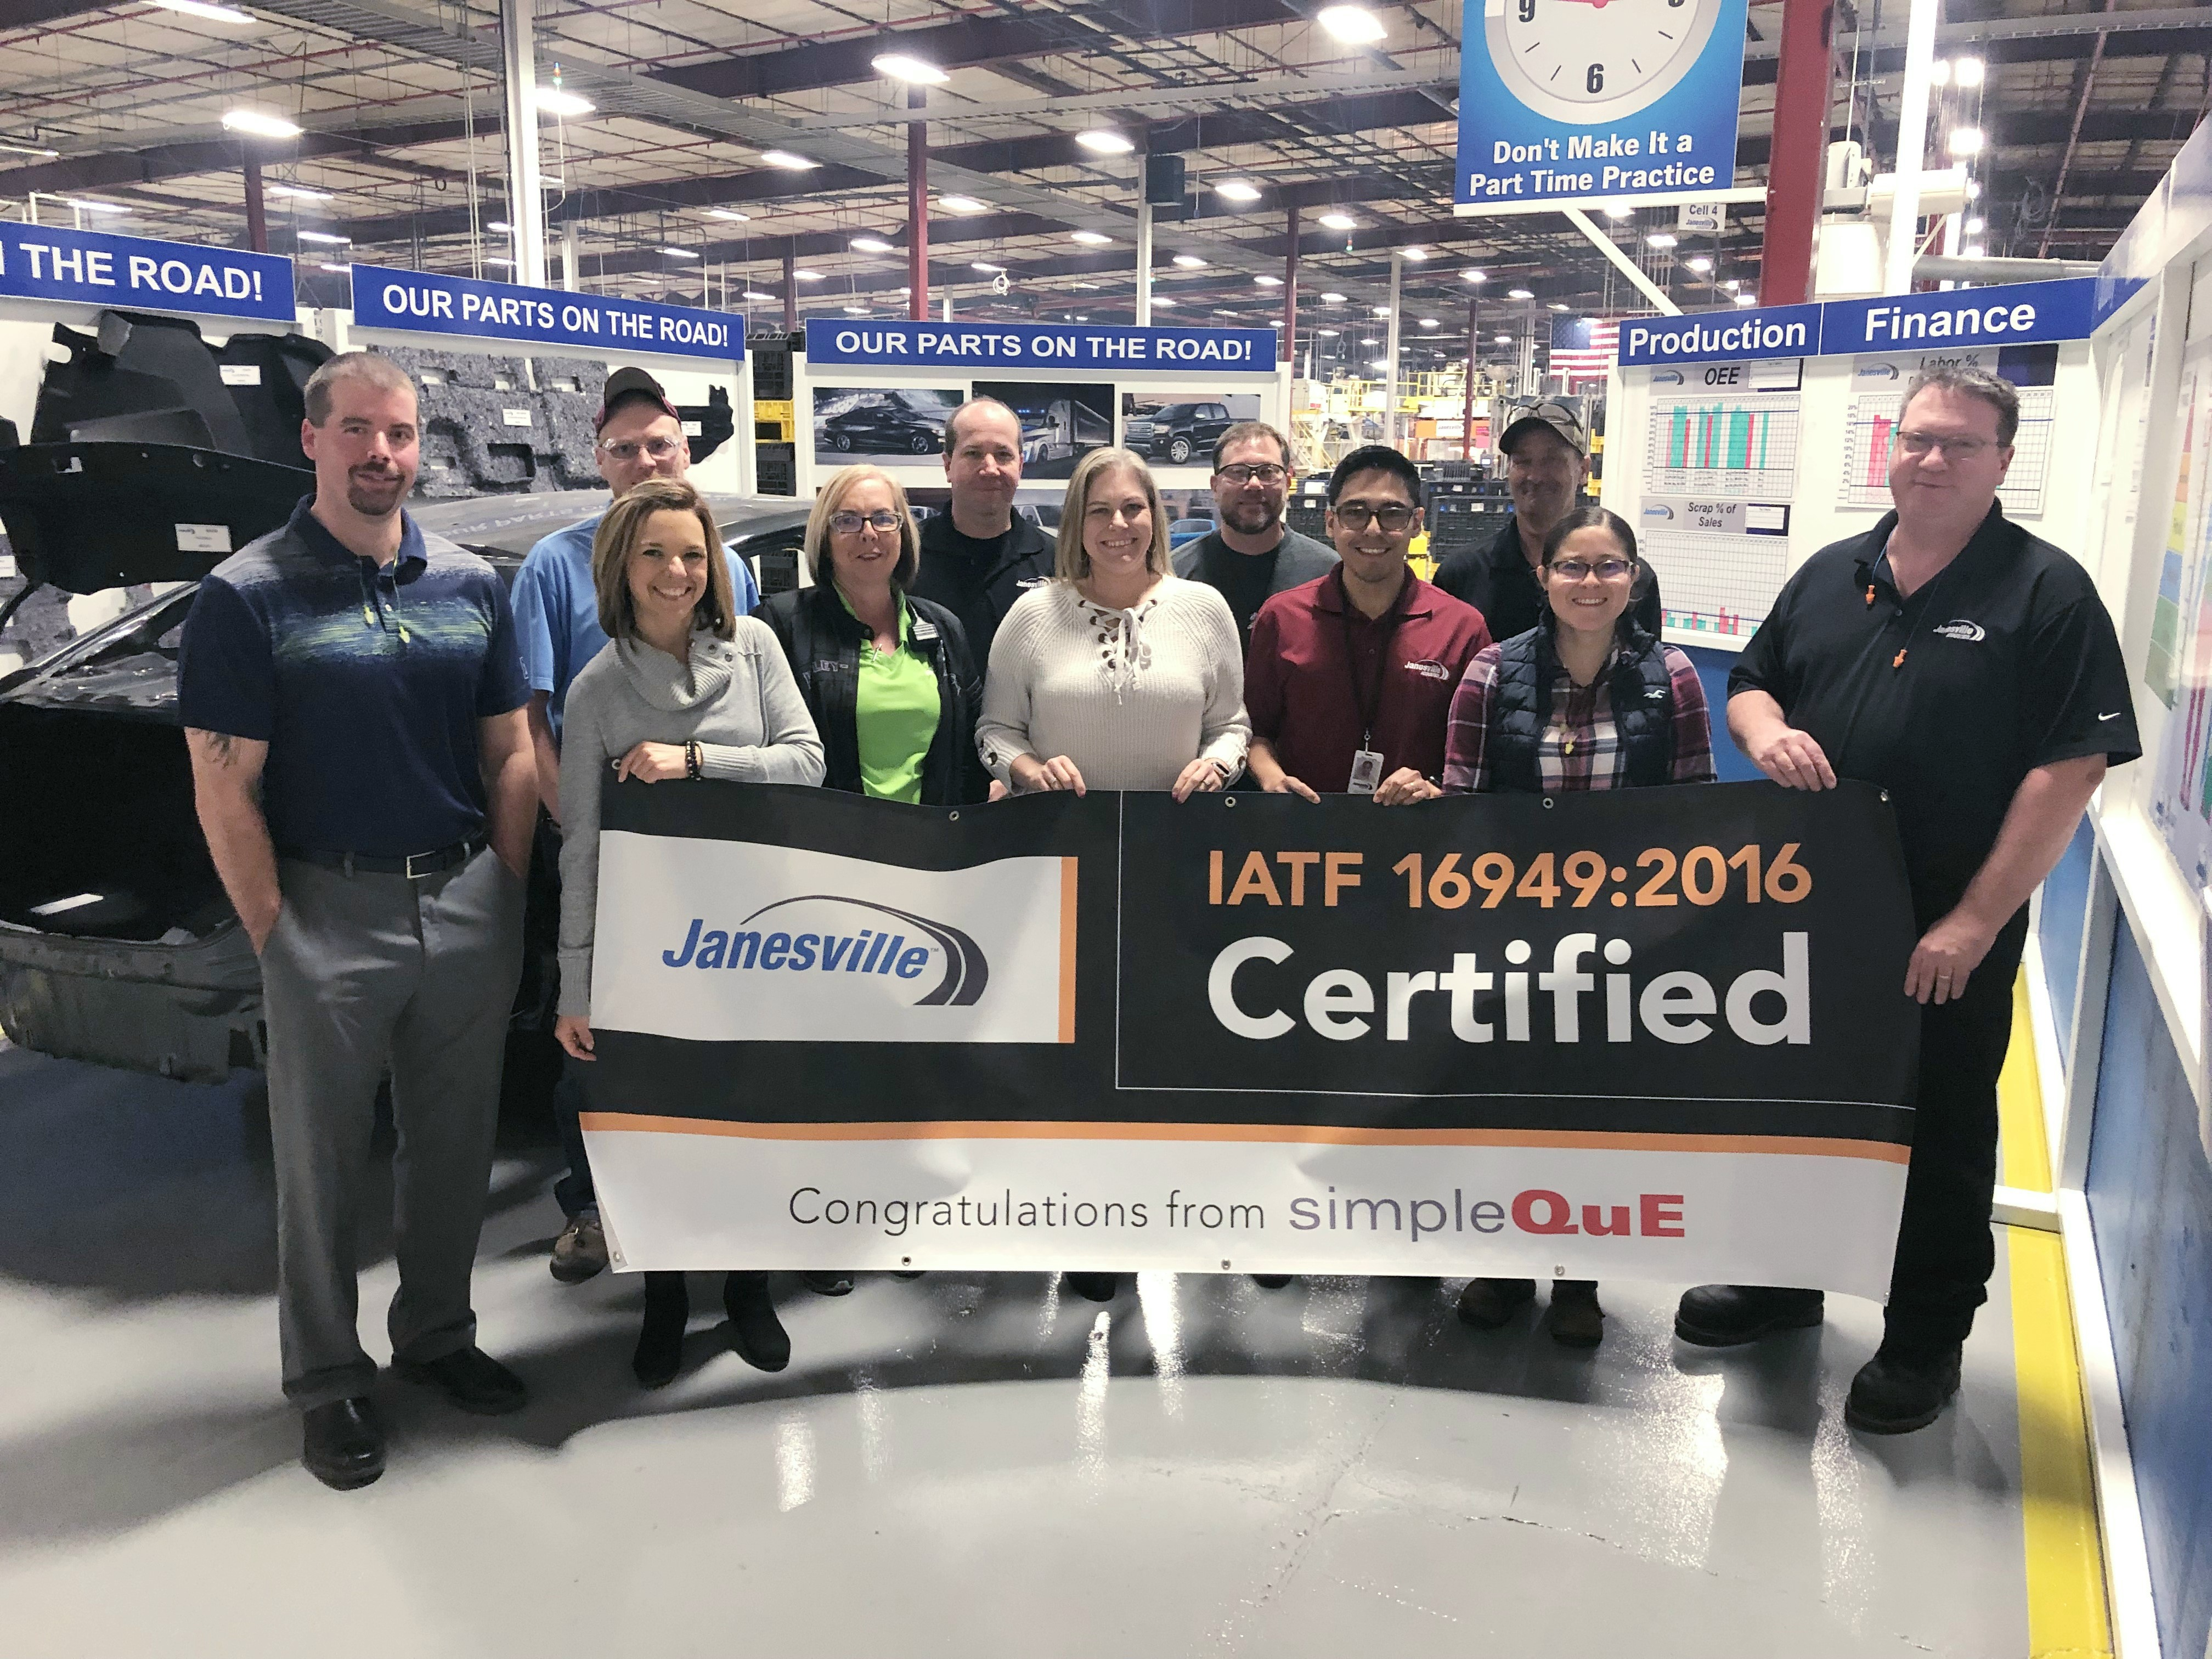 Janesville Acoustics Transitions to IATF 16949